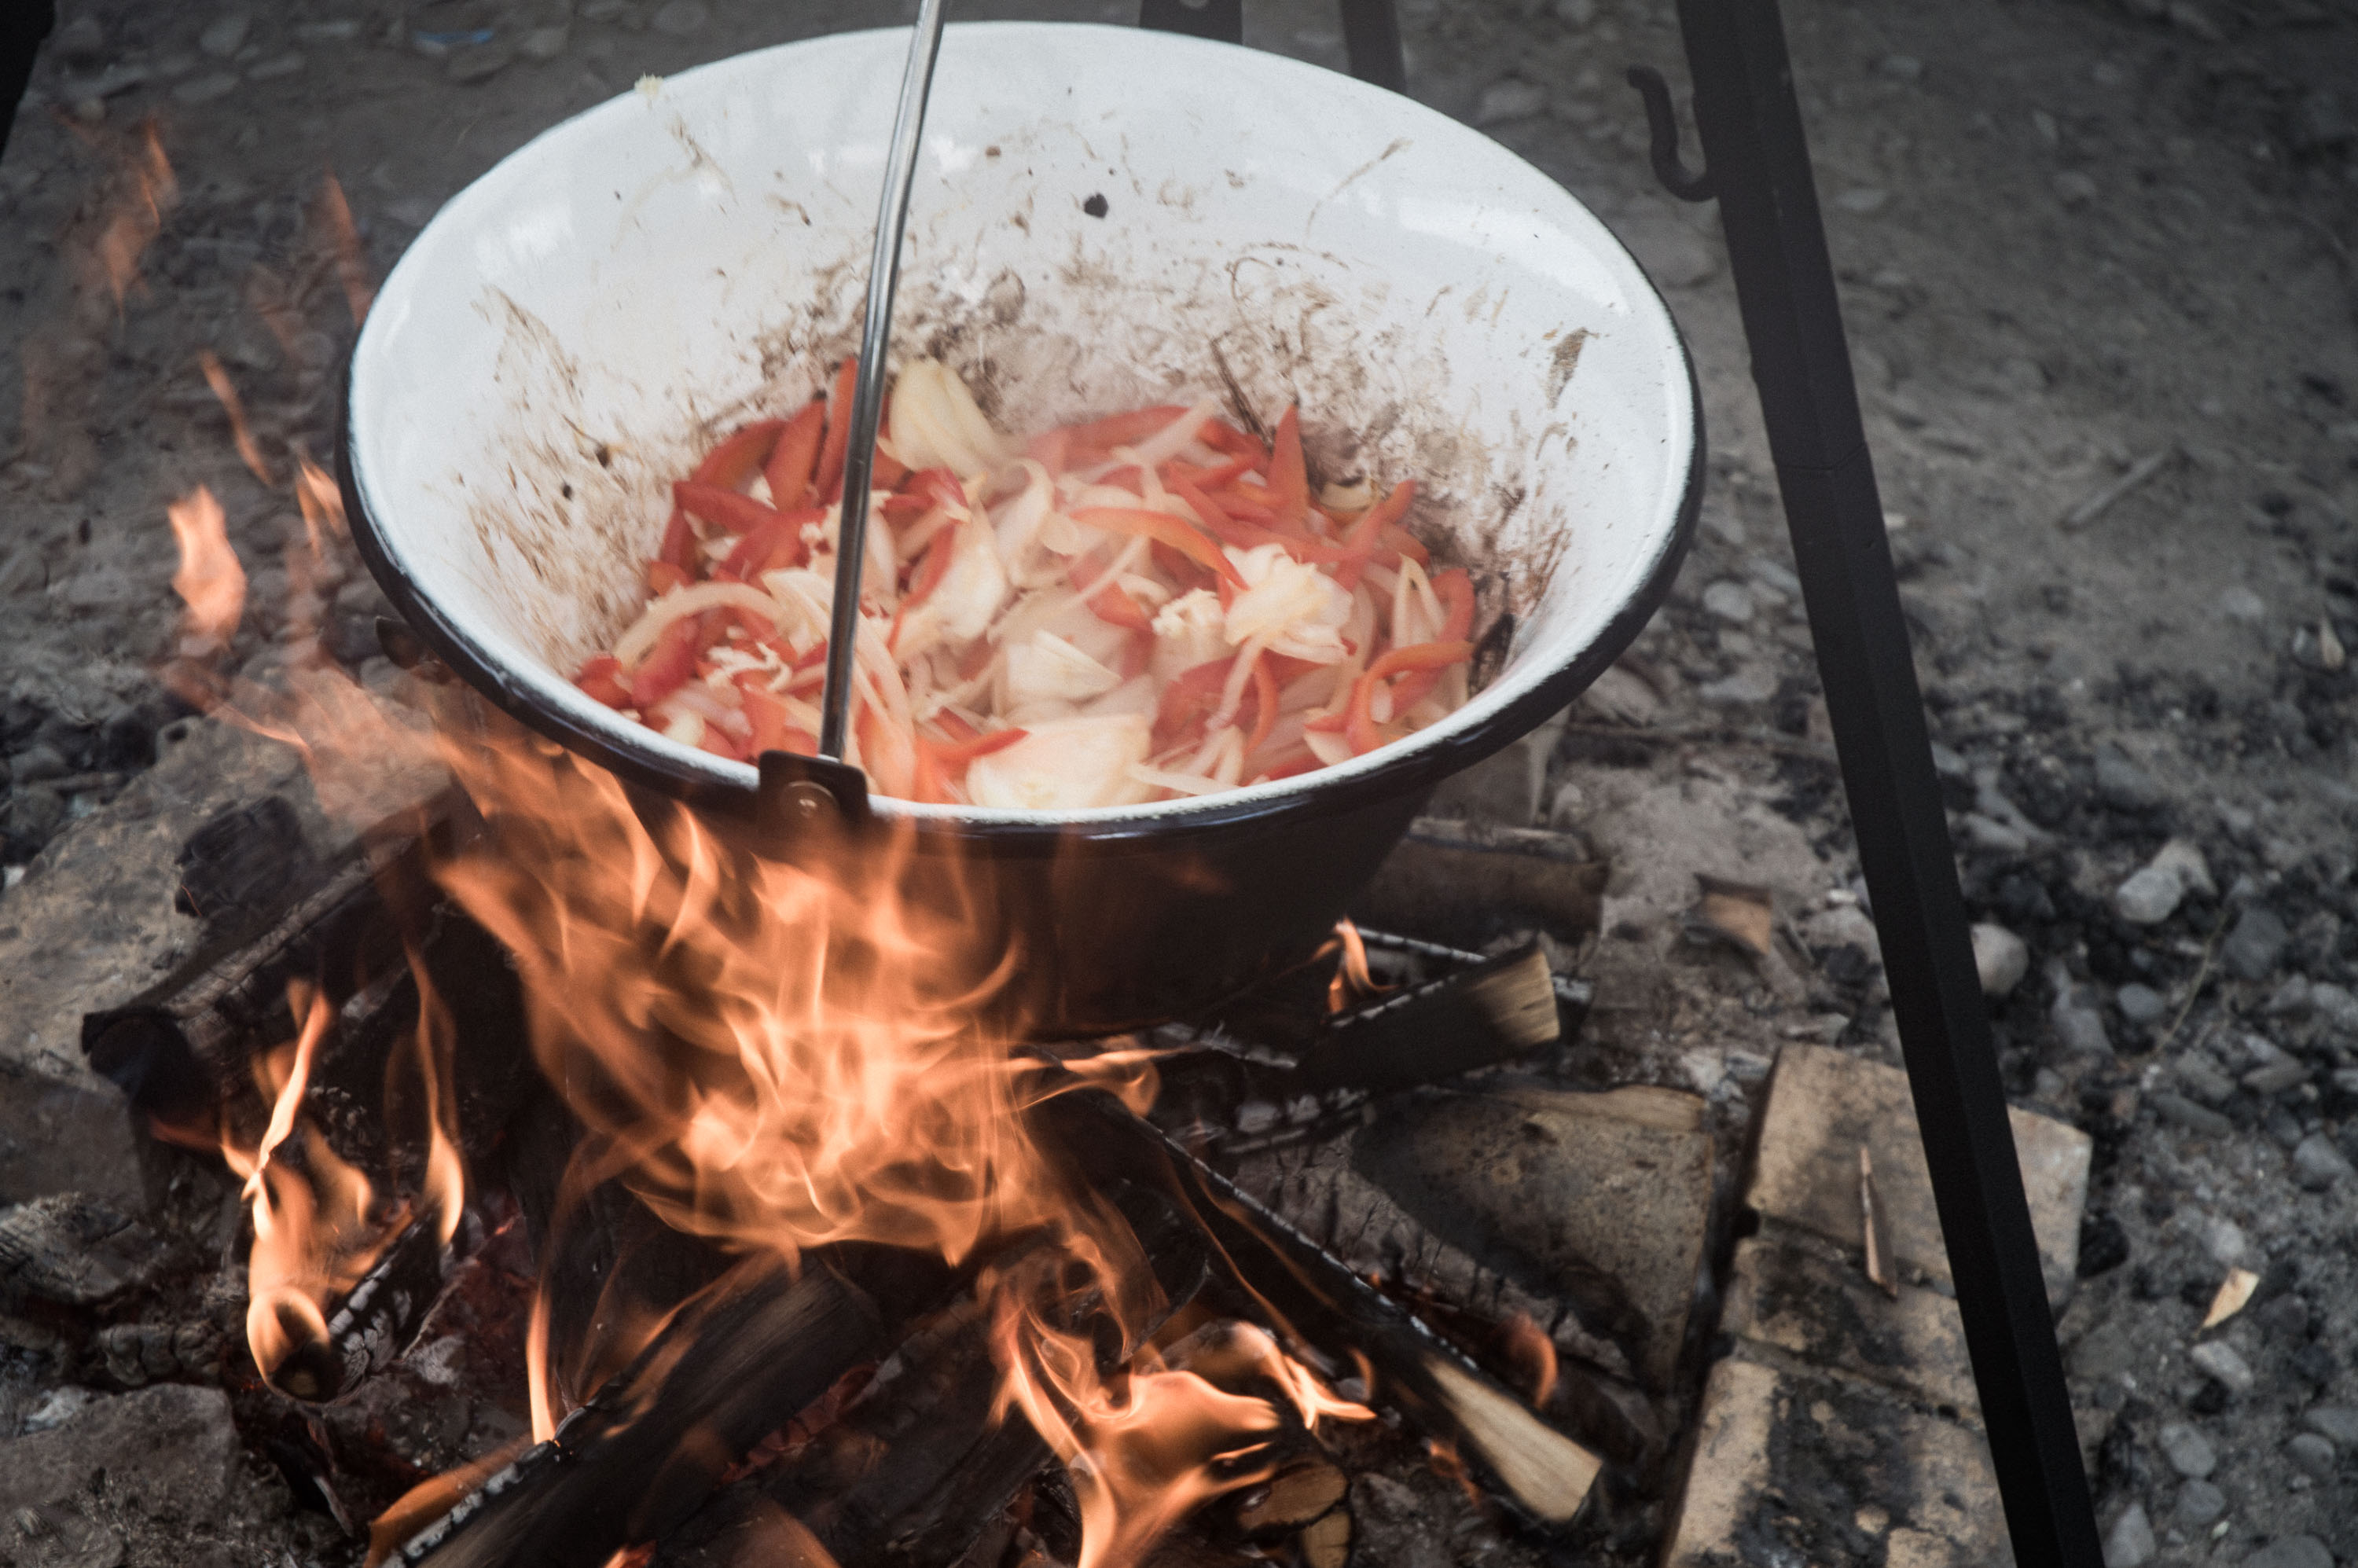 Sisterhood camp fire shakshuka